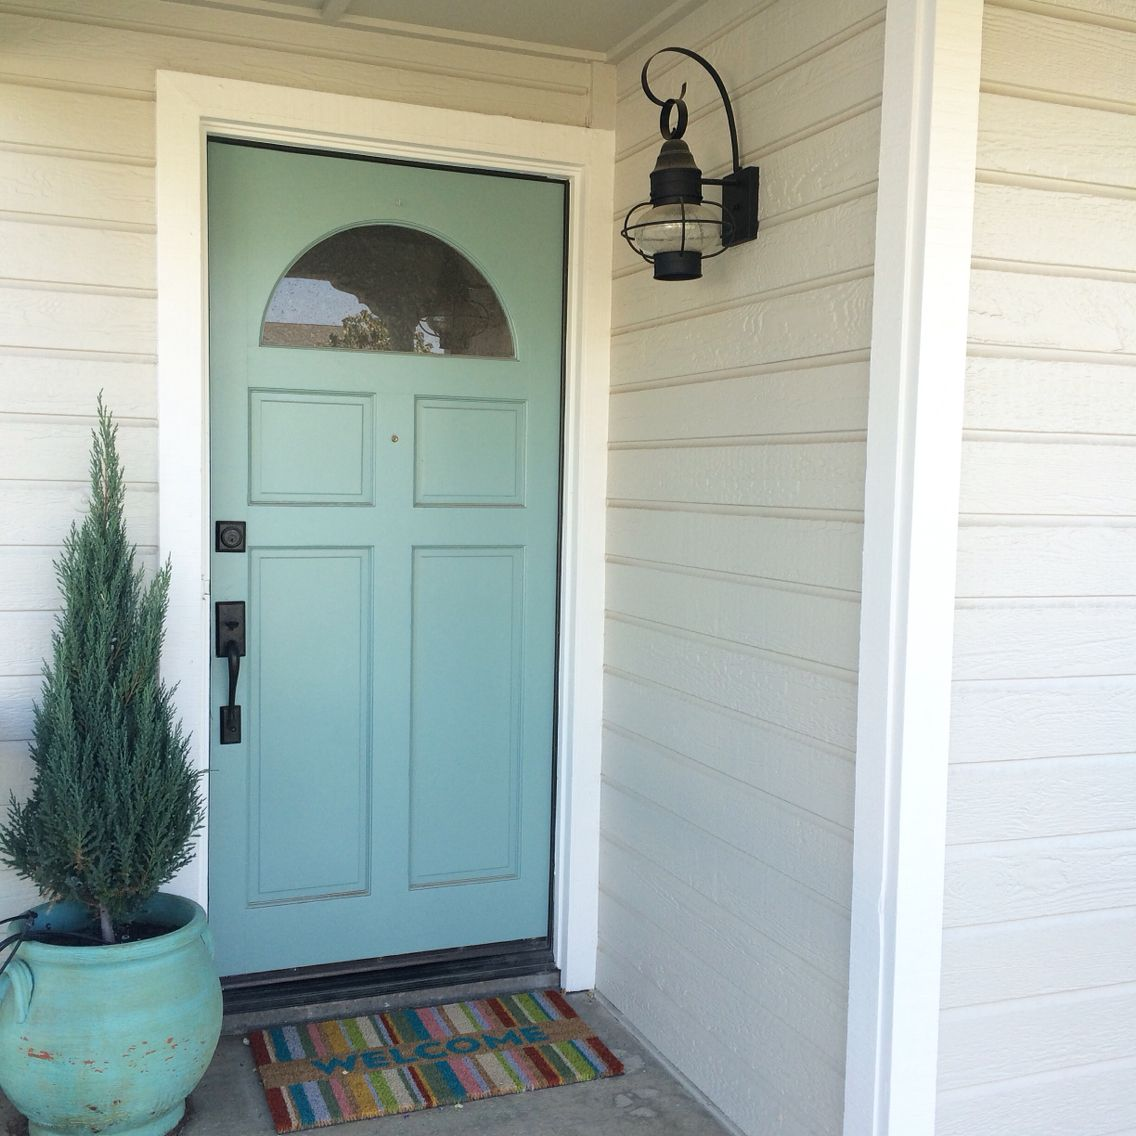 Benjamin Moore Revere Pewter, White Dove (trim), And